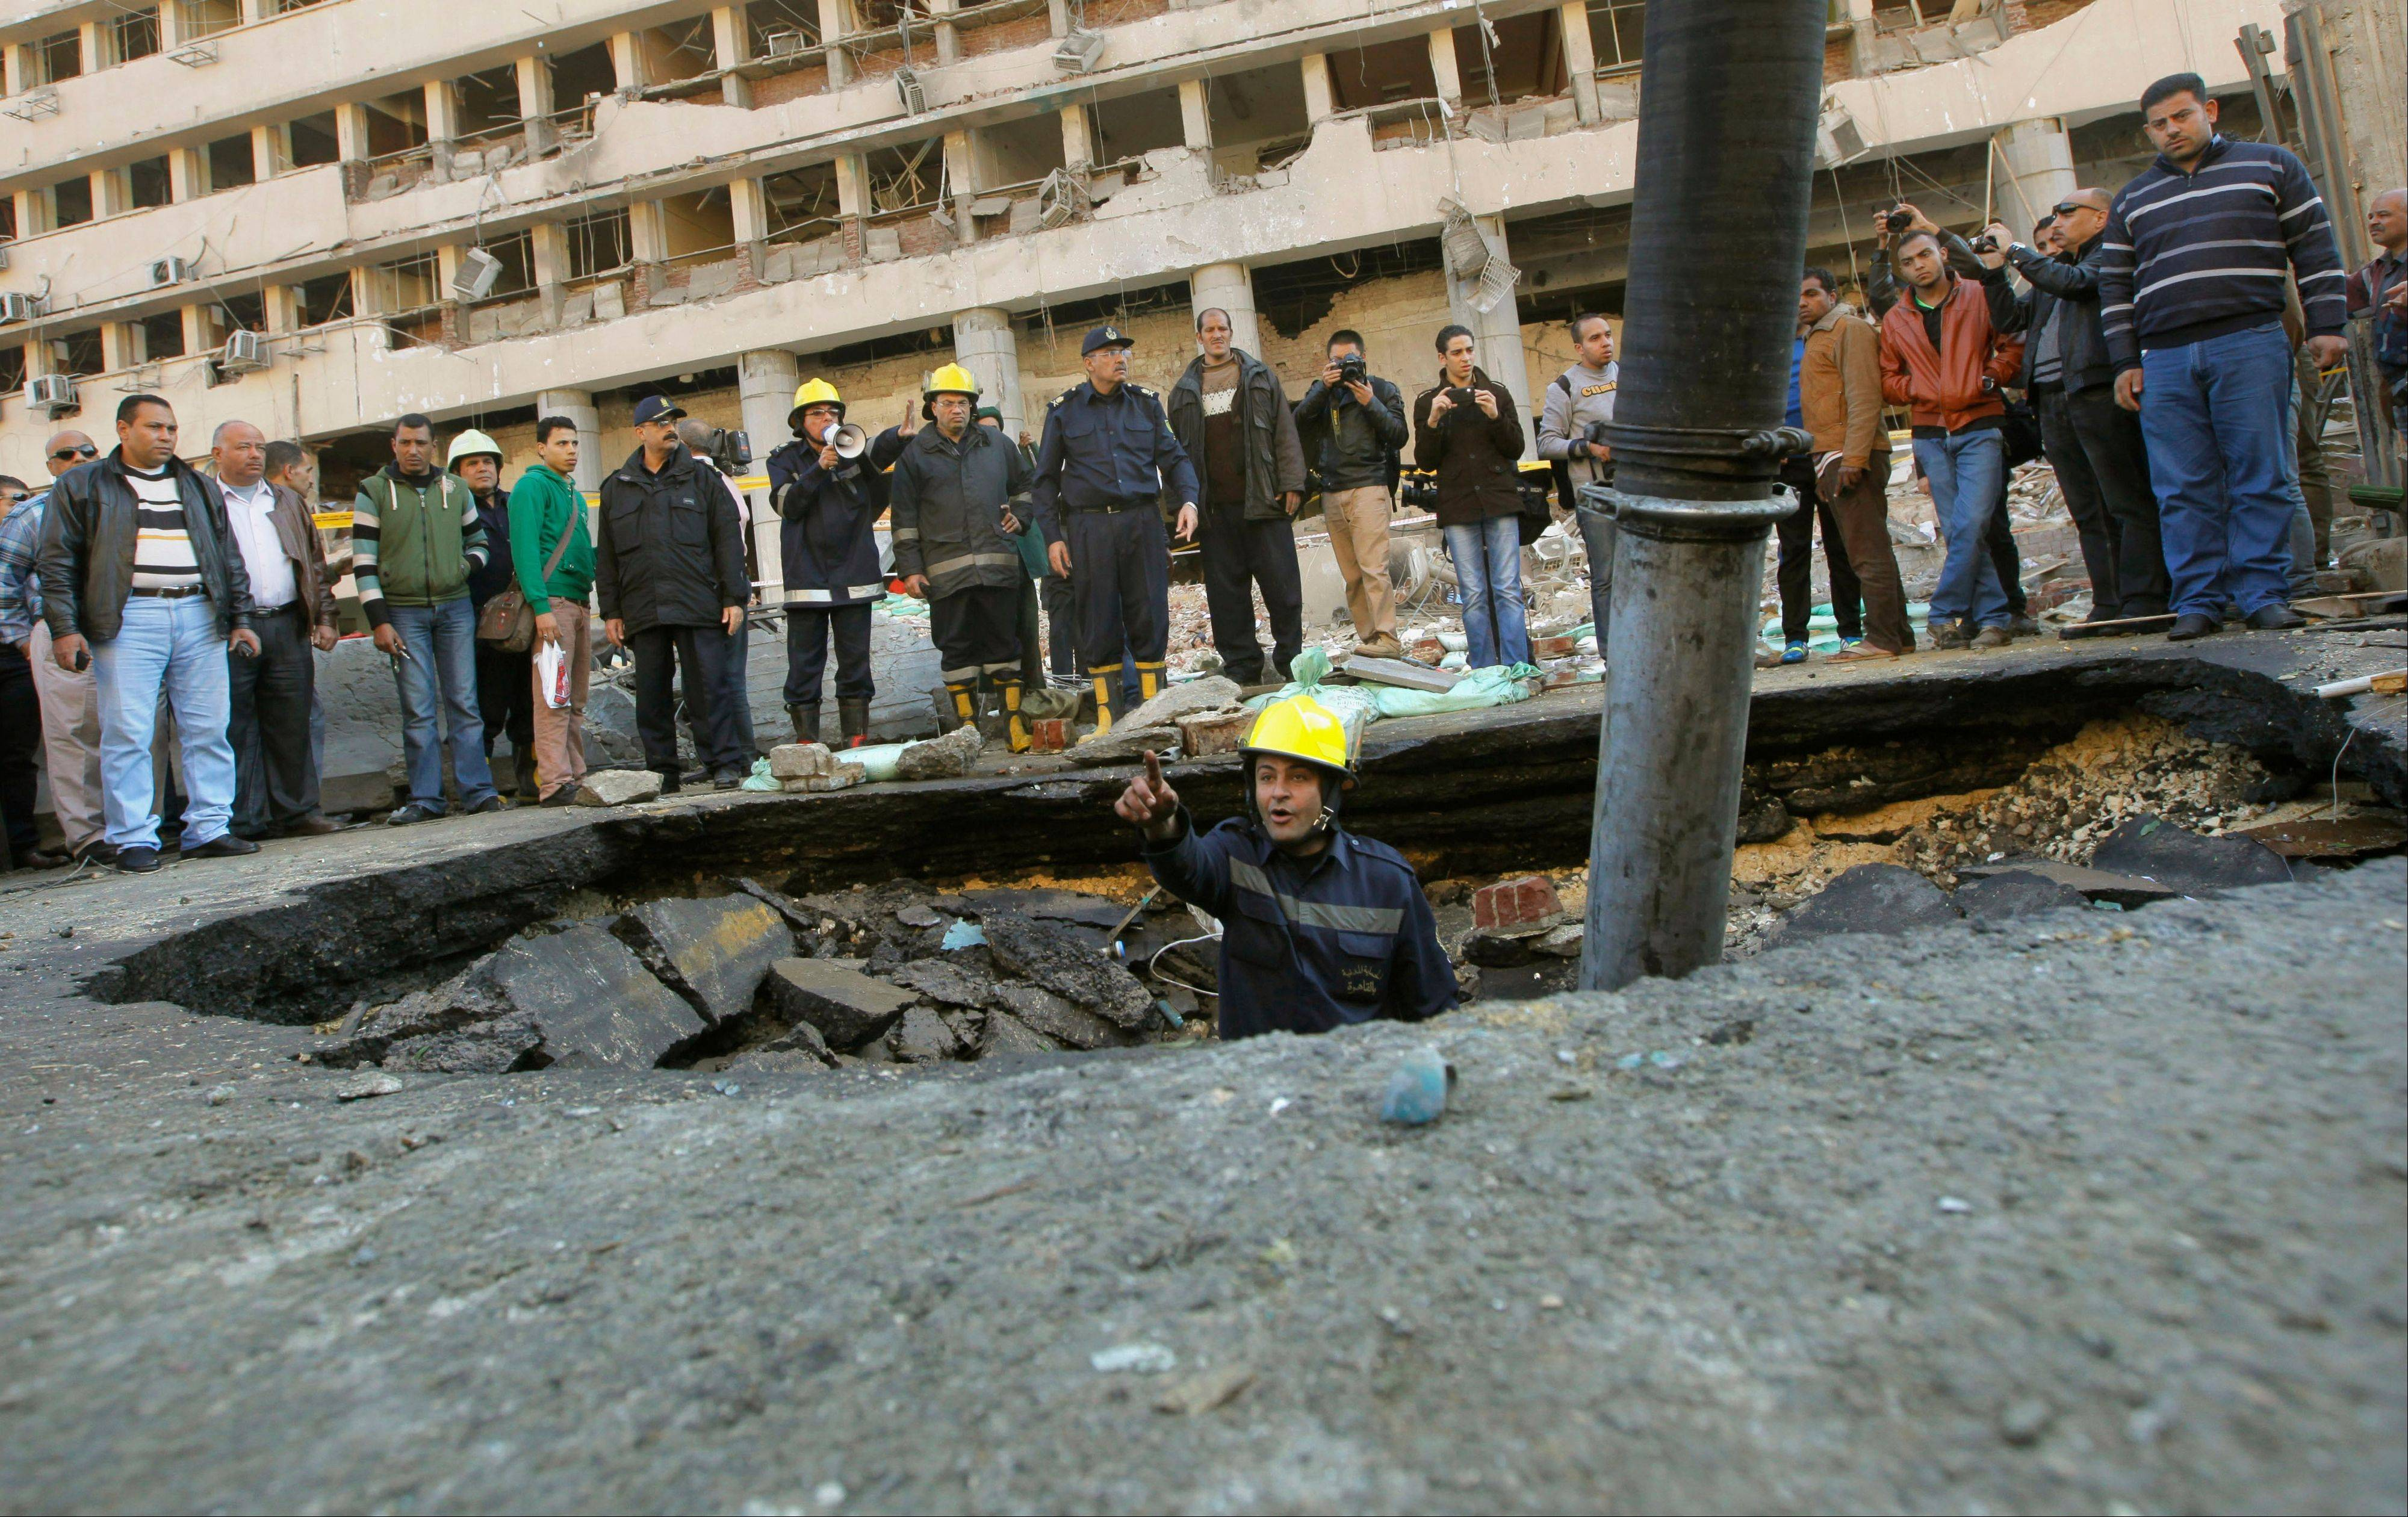 An Egyptian firefighter checks a crater made by a blast at the Egyptian police headquarters in downtown Cairo, Egypt, Friday, Jan. 24, 2014. Three bombings hit high-profile areas around Cairo on Friday, including a suicide car bomber who struck the city's police headquarters.